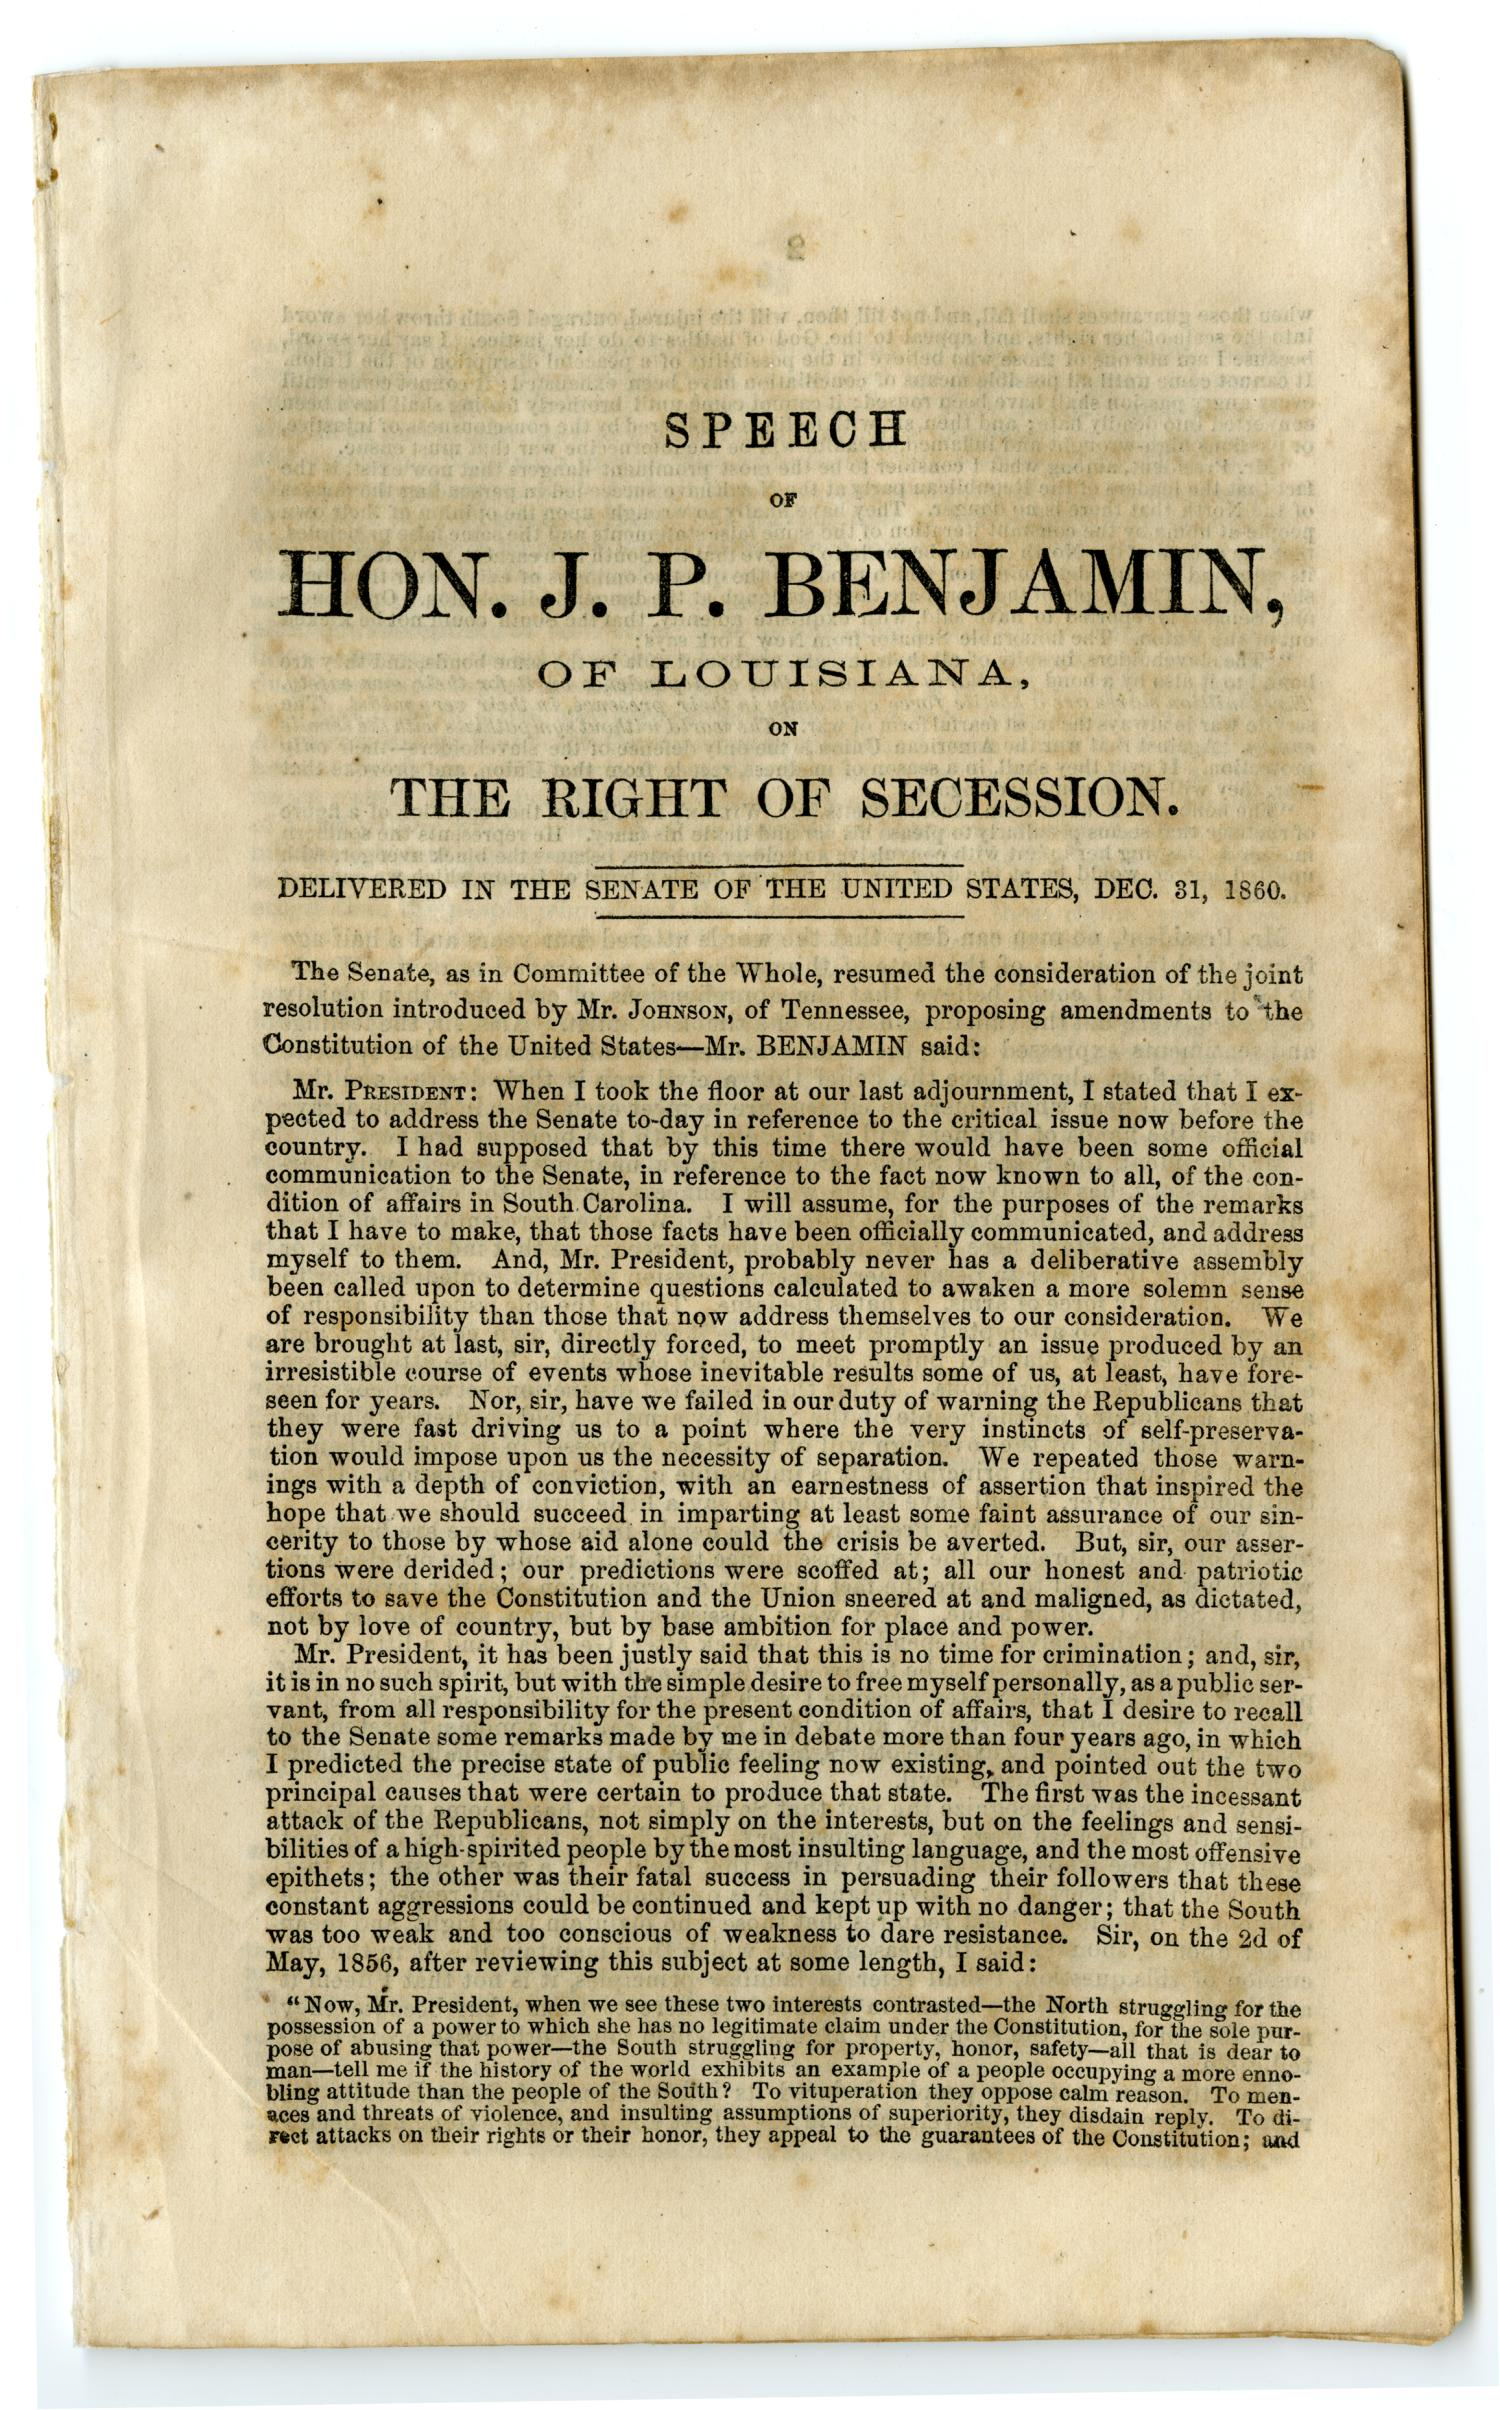 State of the union speech of hon jp benjamin of louisiana on state of the union speech of hon jp benjamin of louisiana on the right of secession delivered in the senate of the united states dec 31 1860 solutioingenieria Choice Image